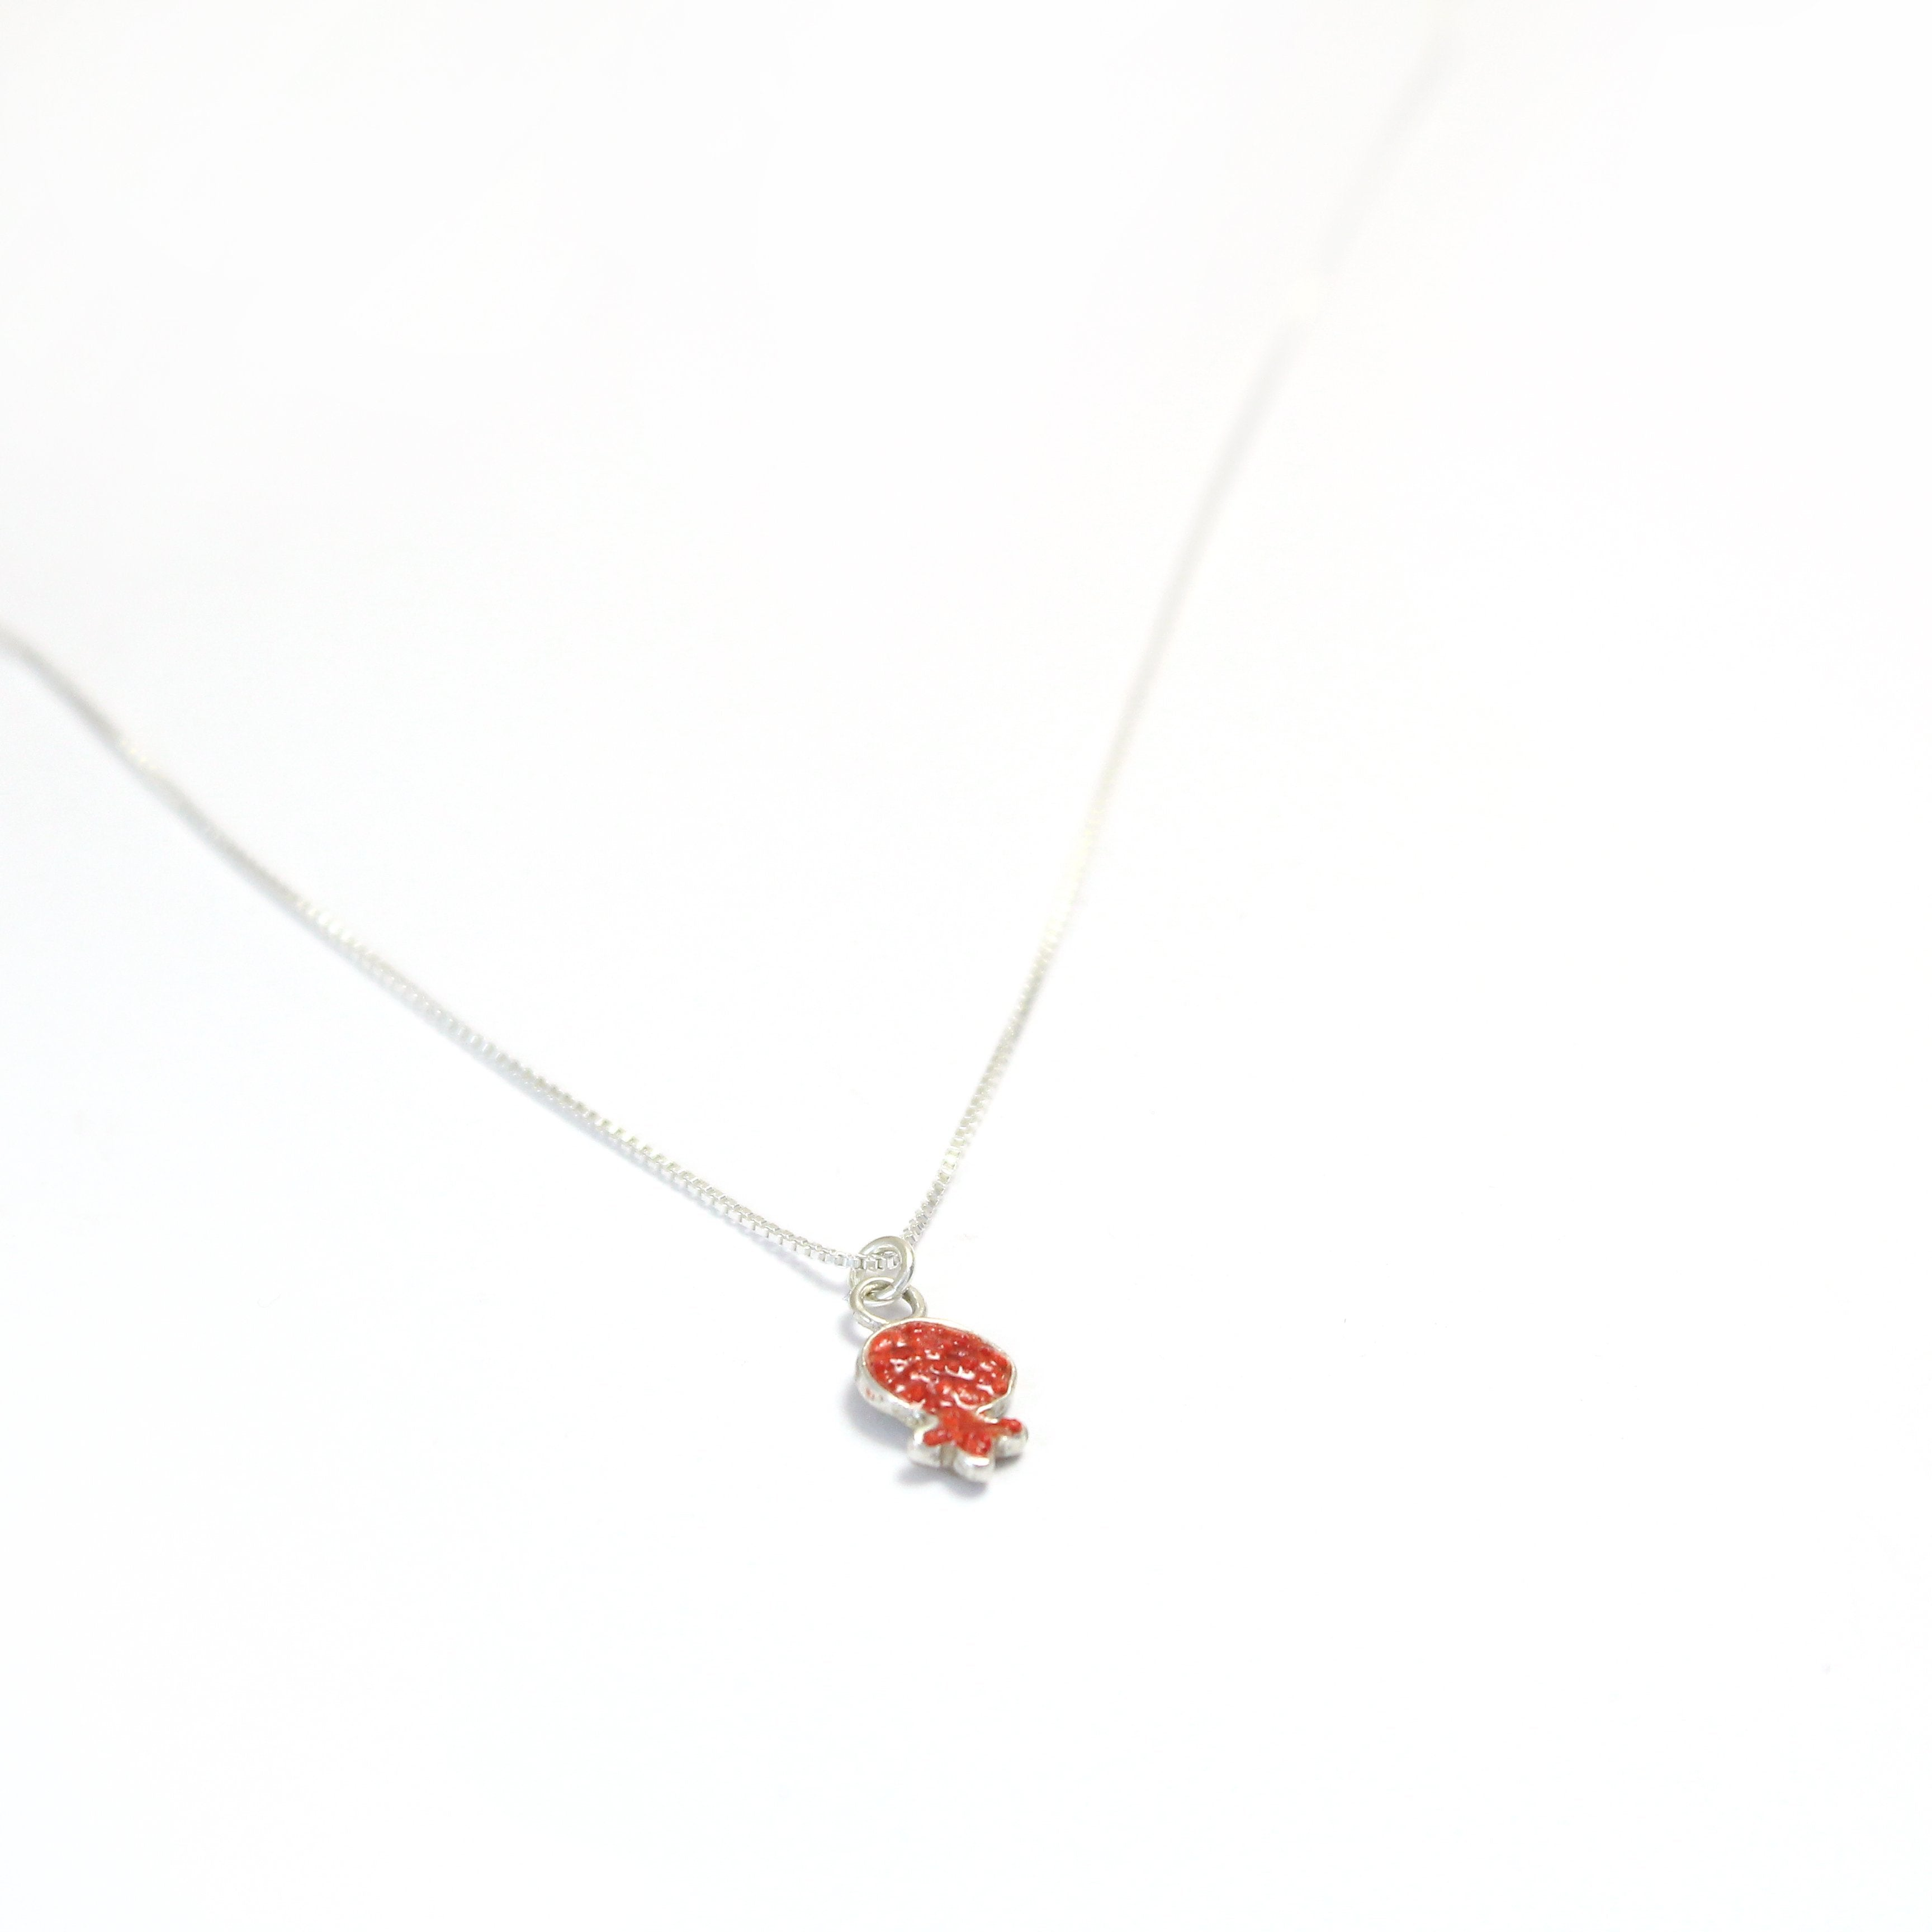 Small Red Pomegranate Necklace with stones - Shulamit Kanter